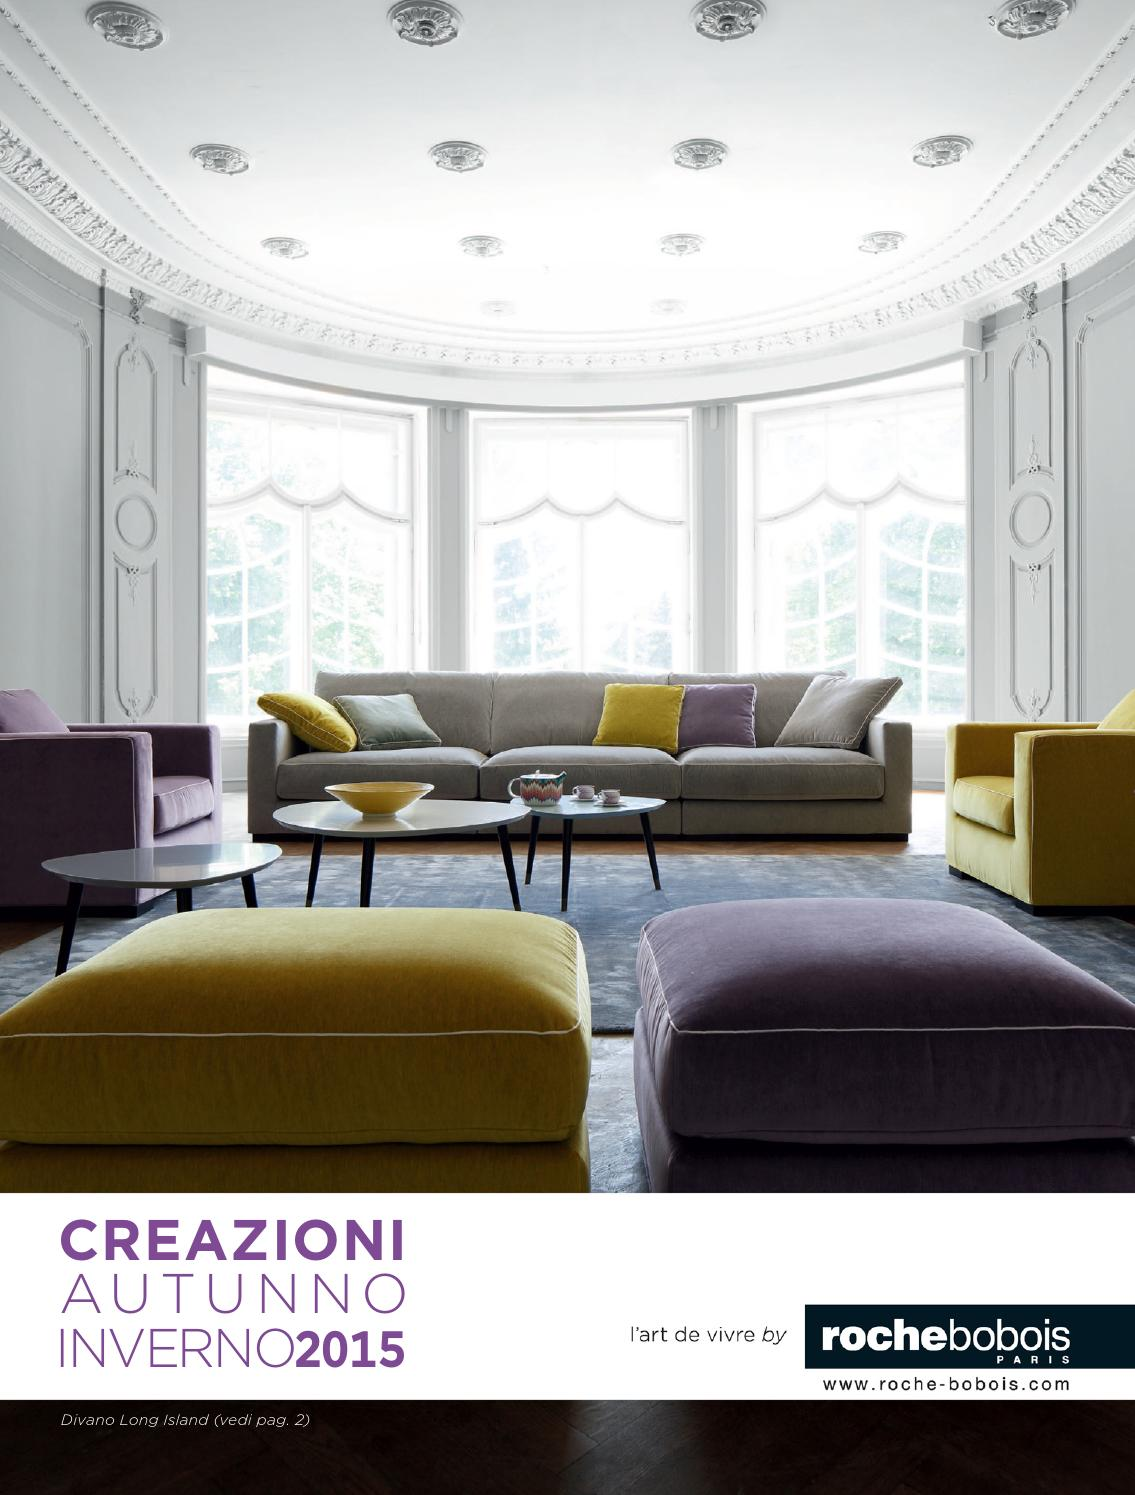 Roche bobois catalogue autunno2015 by Mobilpro - issuu